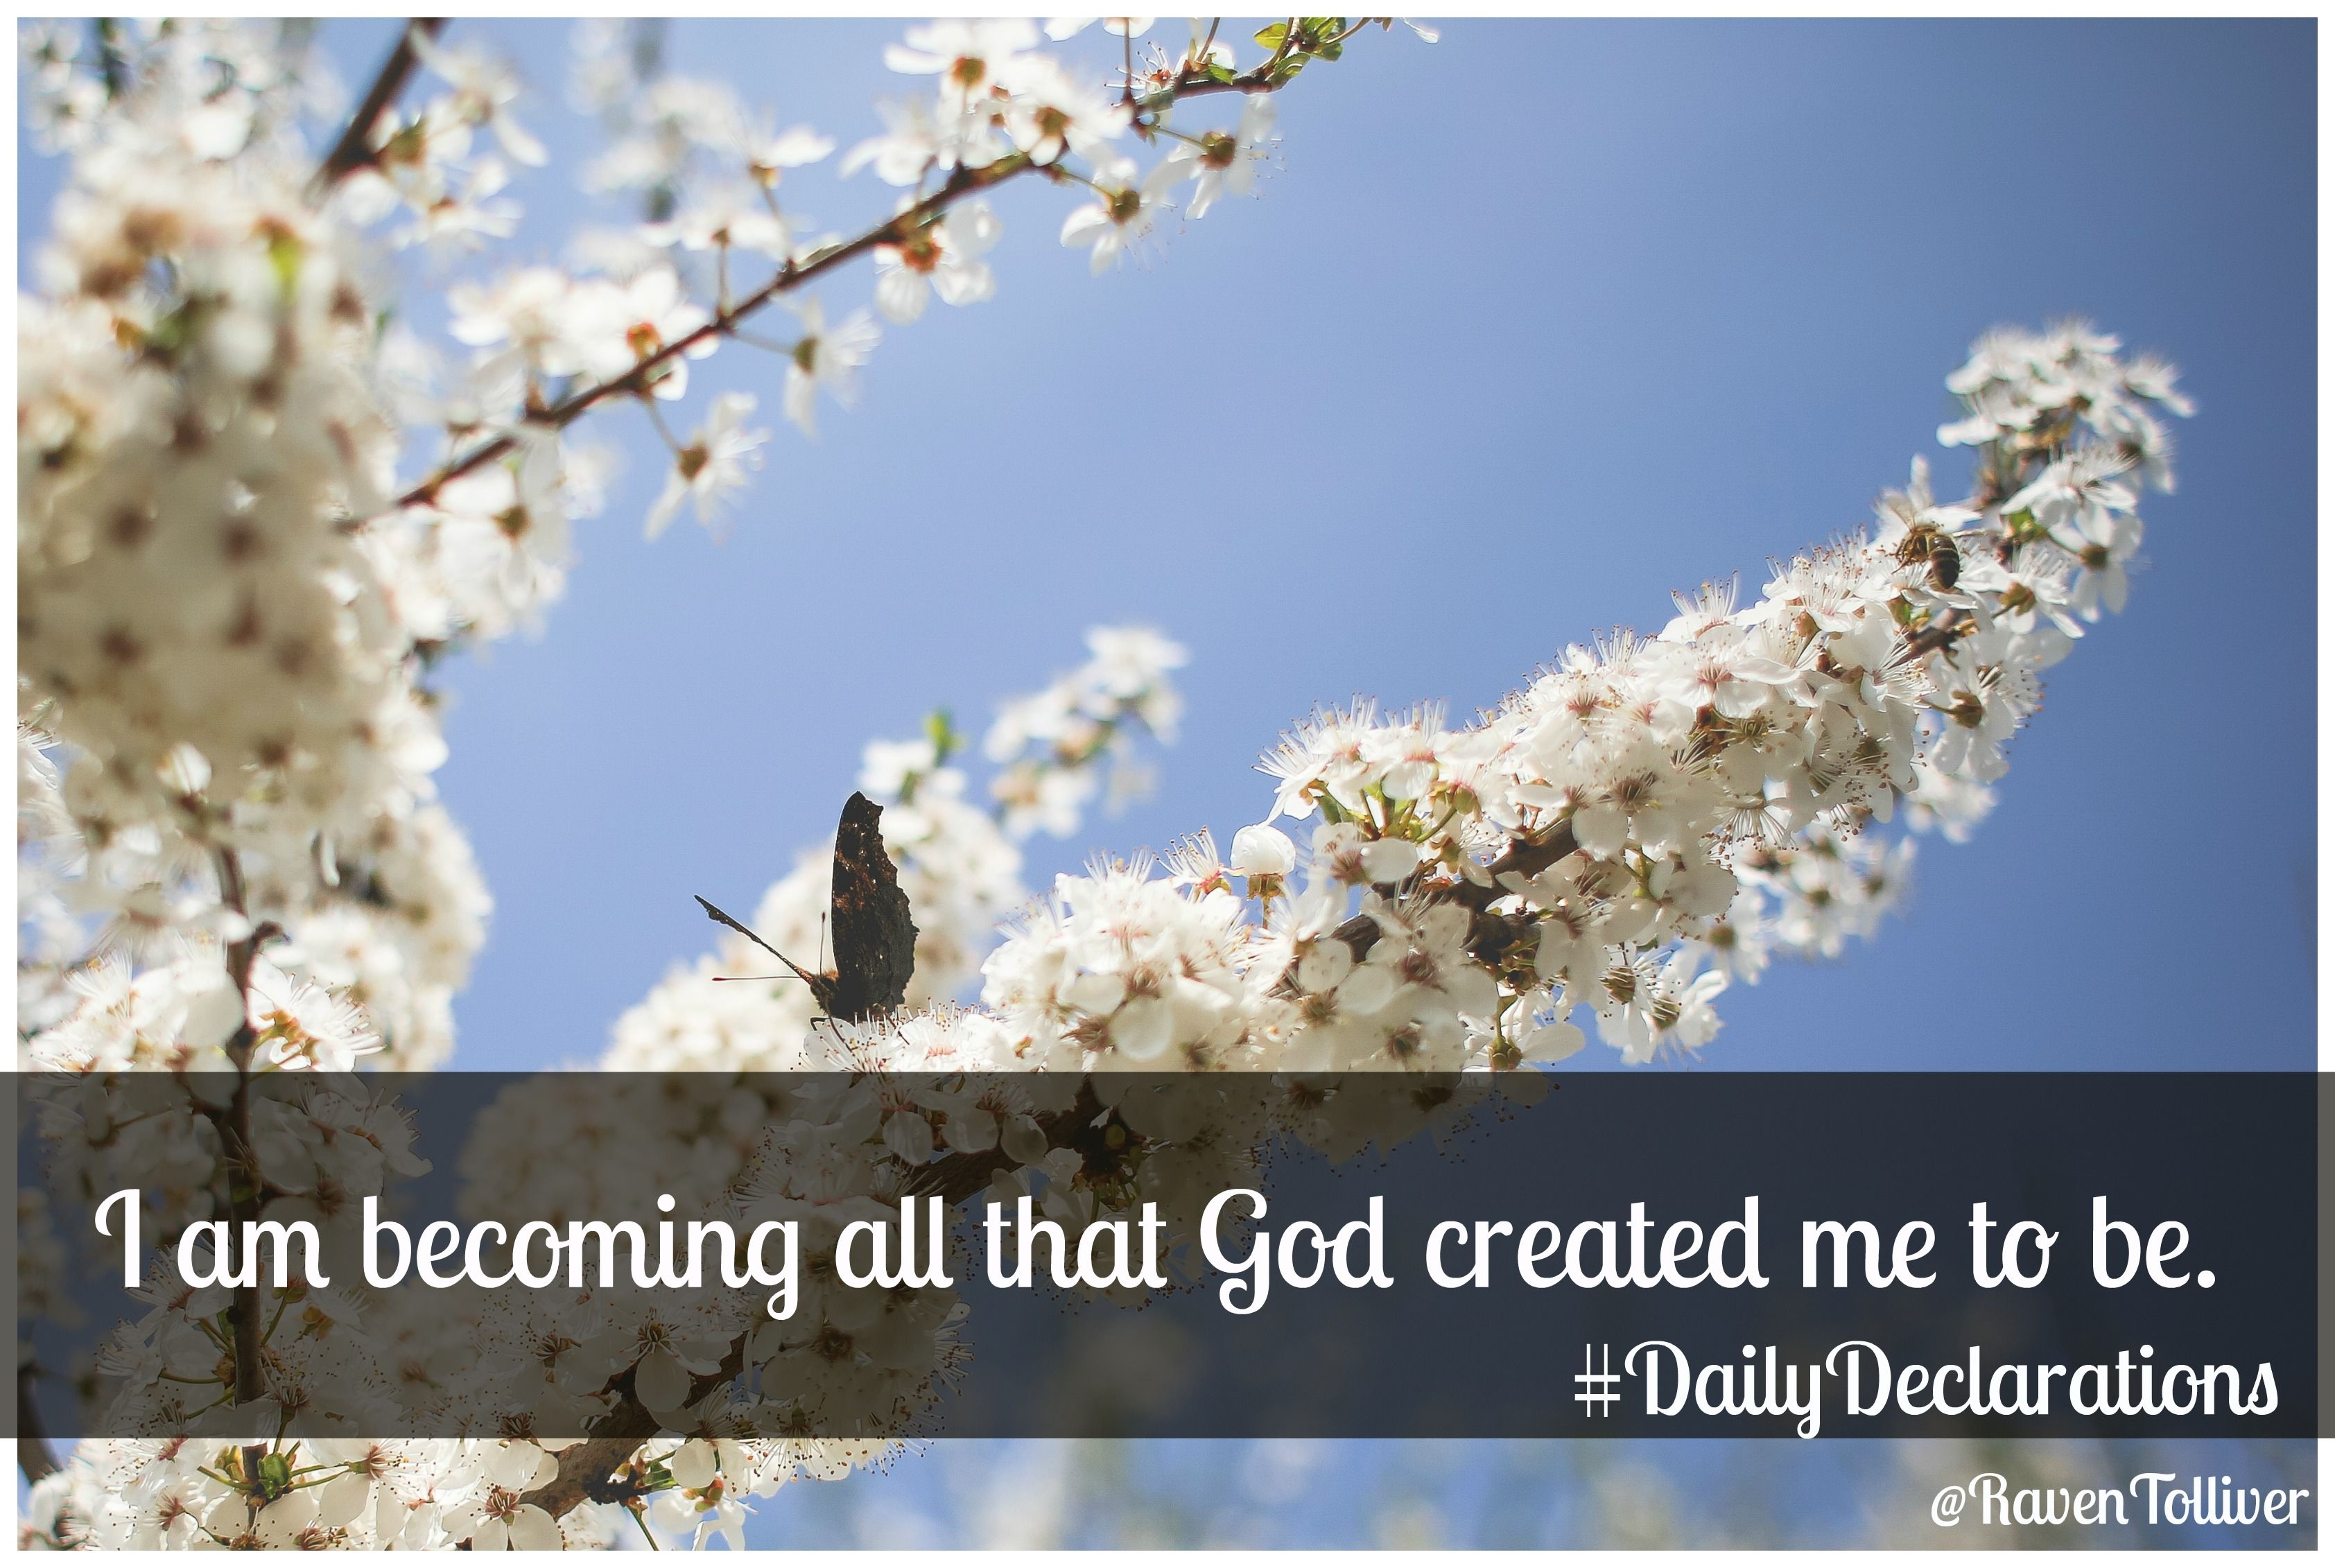 I am becoming all that God created me to be.   ✡In him we were also chosen, having been predestined according to the plan of him who works out everything in conformity with the purpose of his will,-Ephesians1:11 ✡But you are a chosen people, a royal priesthood, a holy nation, God's special possession, that you may declare the praises of him who called you out of darkness into his wonderful light.-1 Peter 2:9 #Scriptures